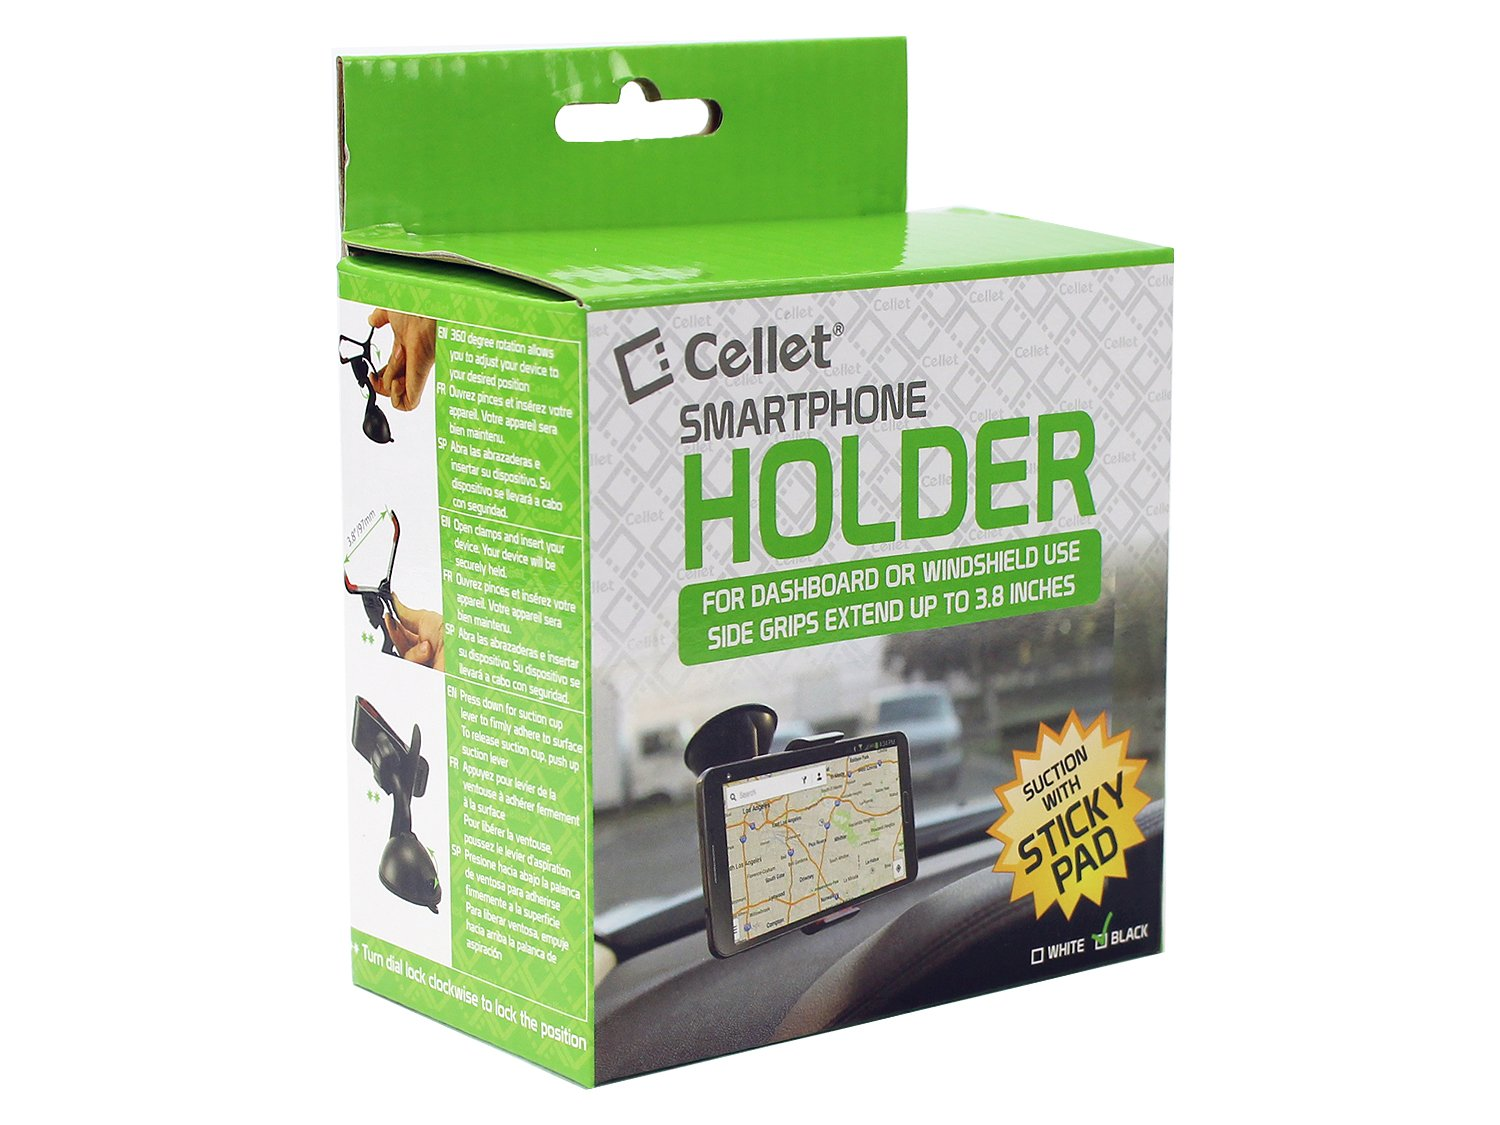 Cellet PHT850BK Dashboard//Windshield Car Clip Mount Holder with Sticky Pad for Samsung Galaxy S8 S8 Plus S6 S5 Note 8// Apple iPhone X 8//8 Plus and other Phones and GPS up to 3.8 Inches Wide